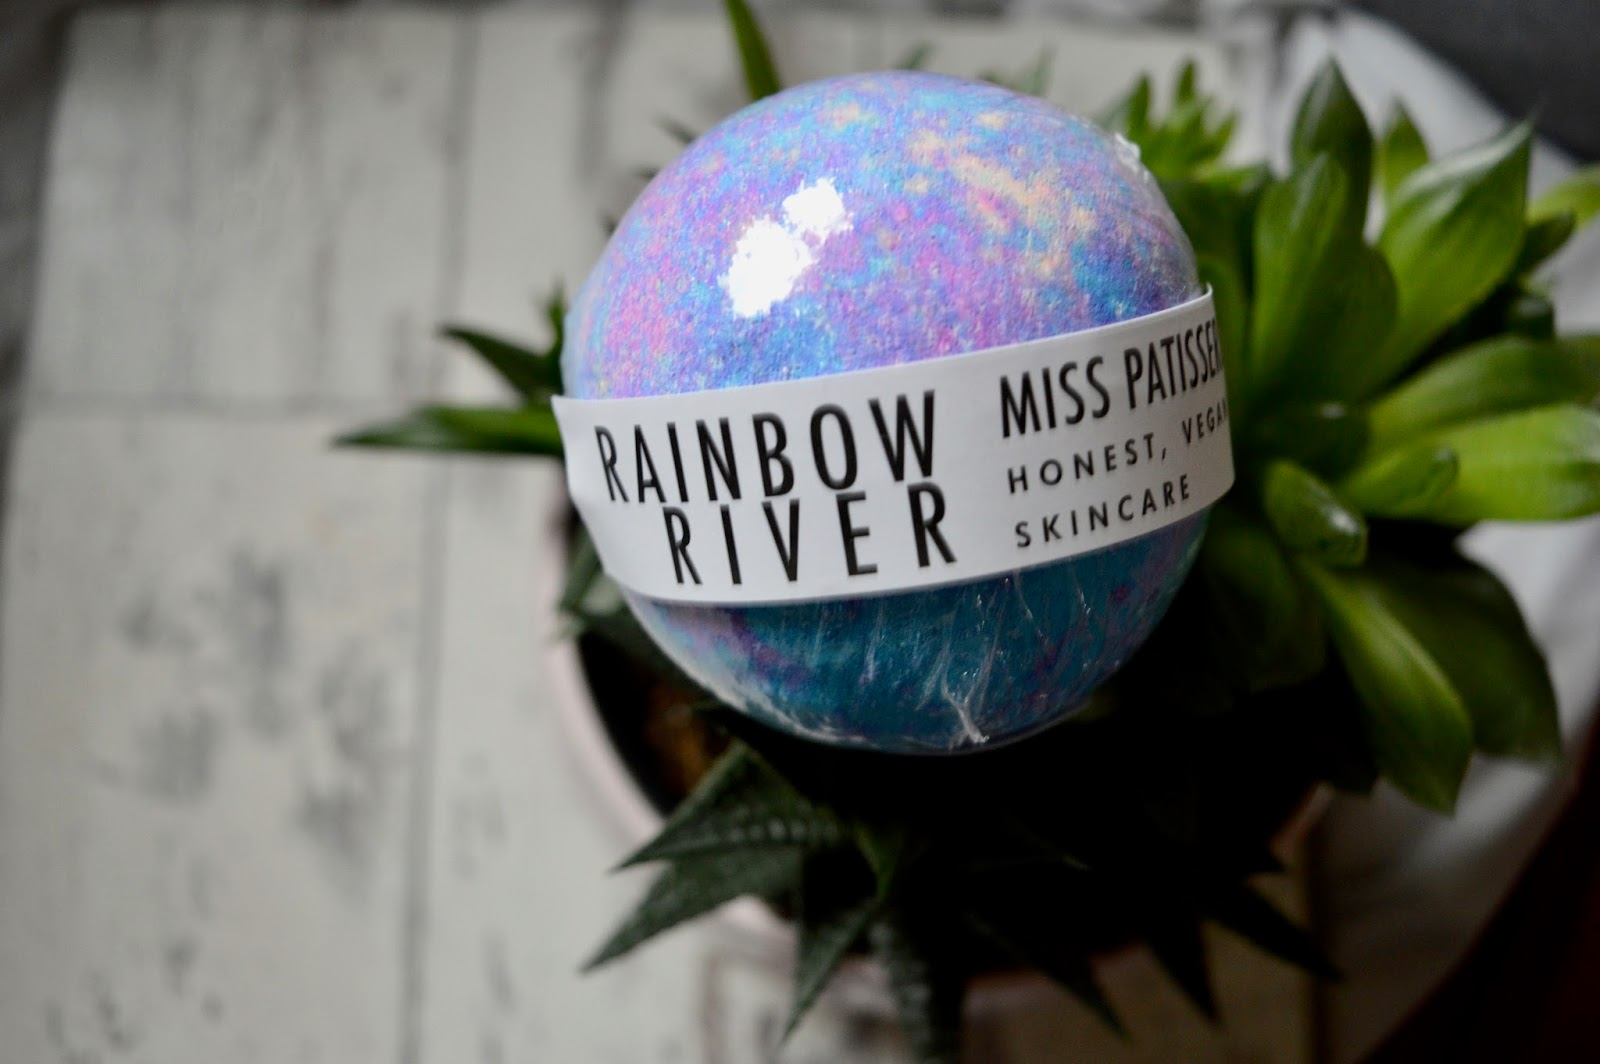 miss patisseries rainbow river review